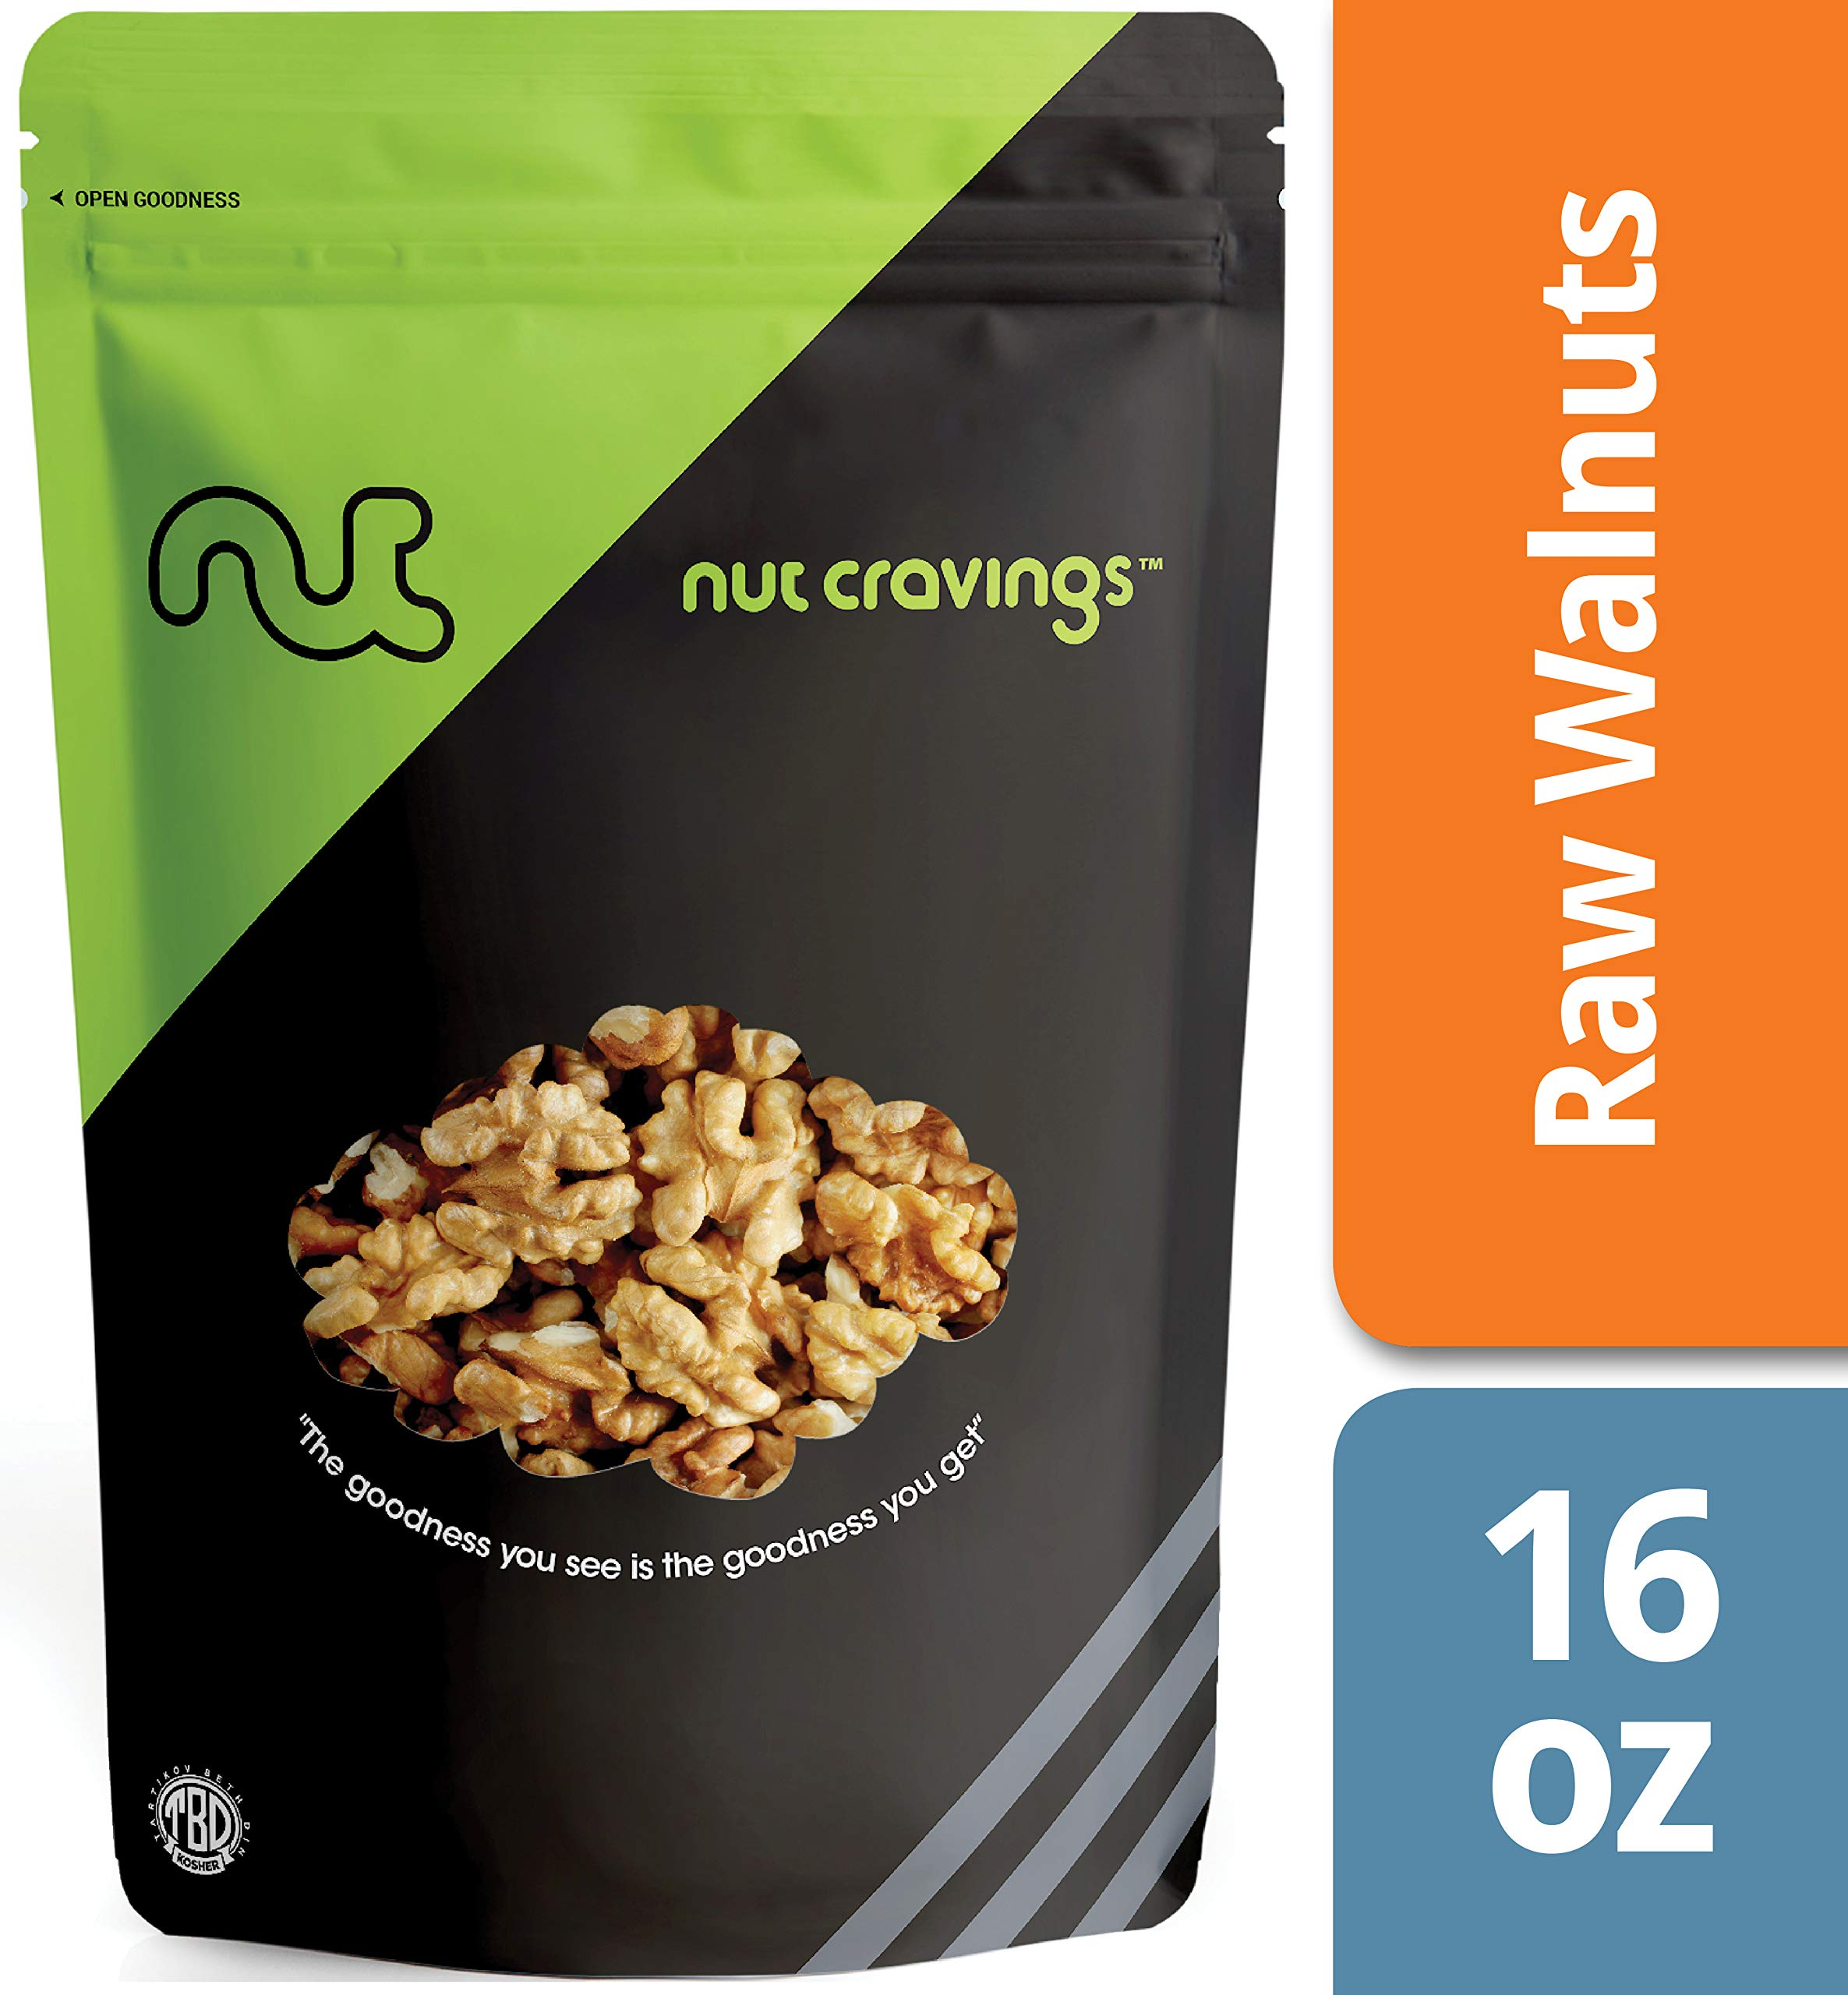 Nut Cravings California Raw Walnuts - 100% All Natural Shelled Halves and Pieces - 16 Ounce by Nut Cravings